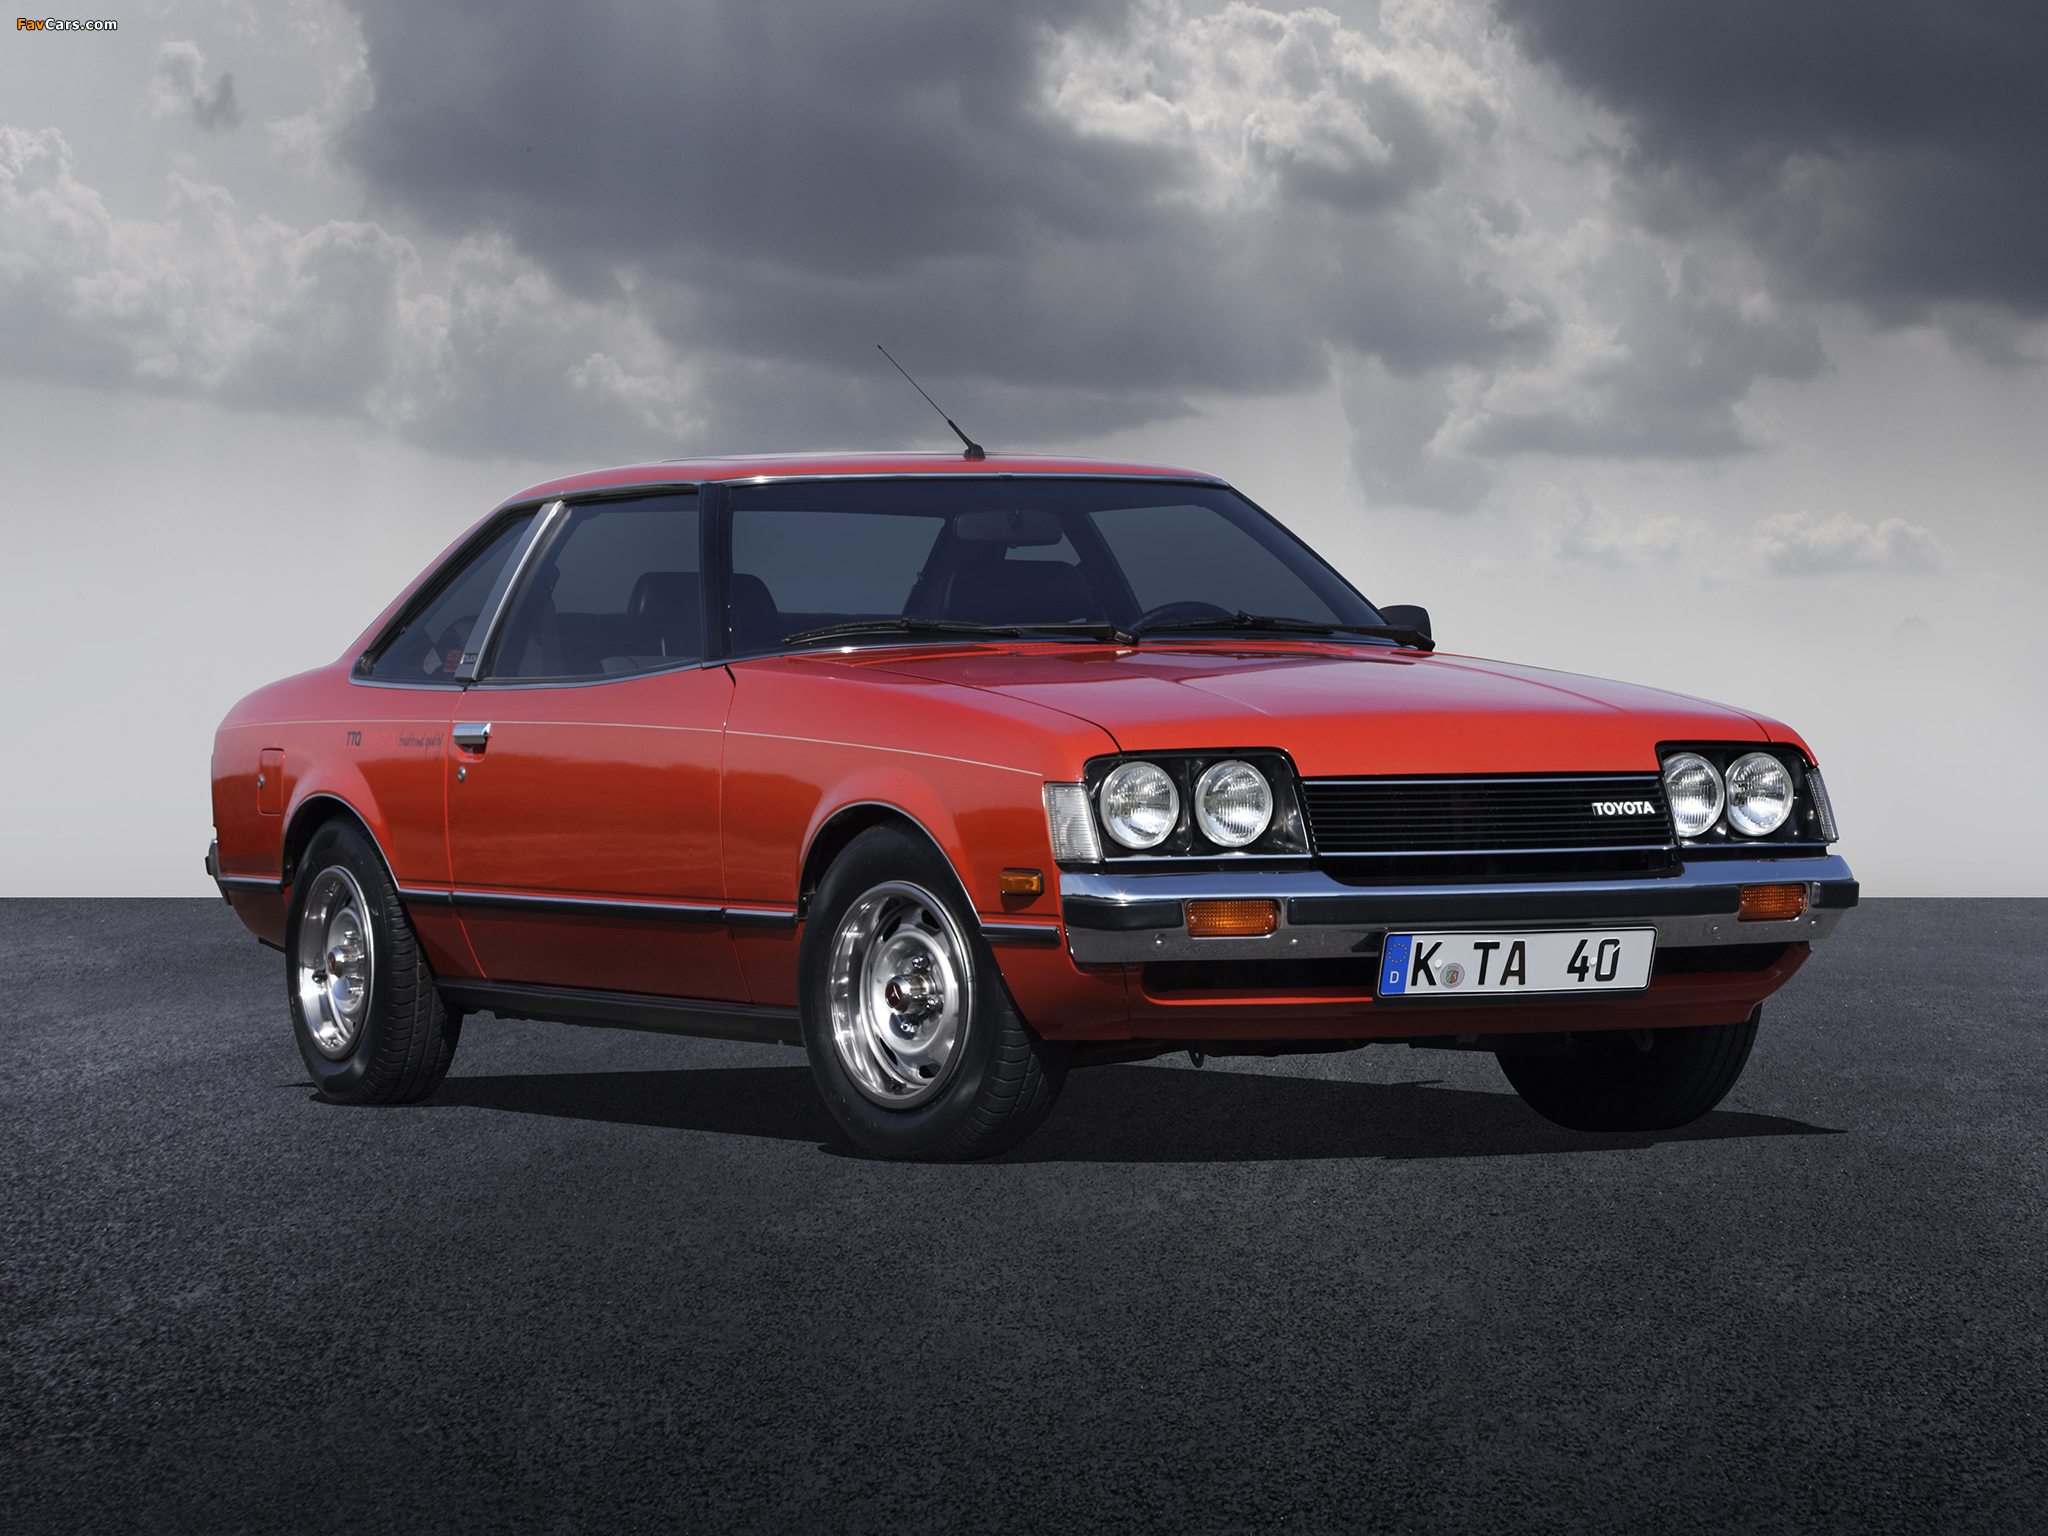 Toyota Celica Gt Coupe Eu Spec Ta40 1977 79 Photos